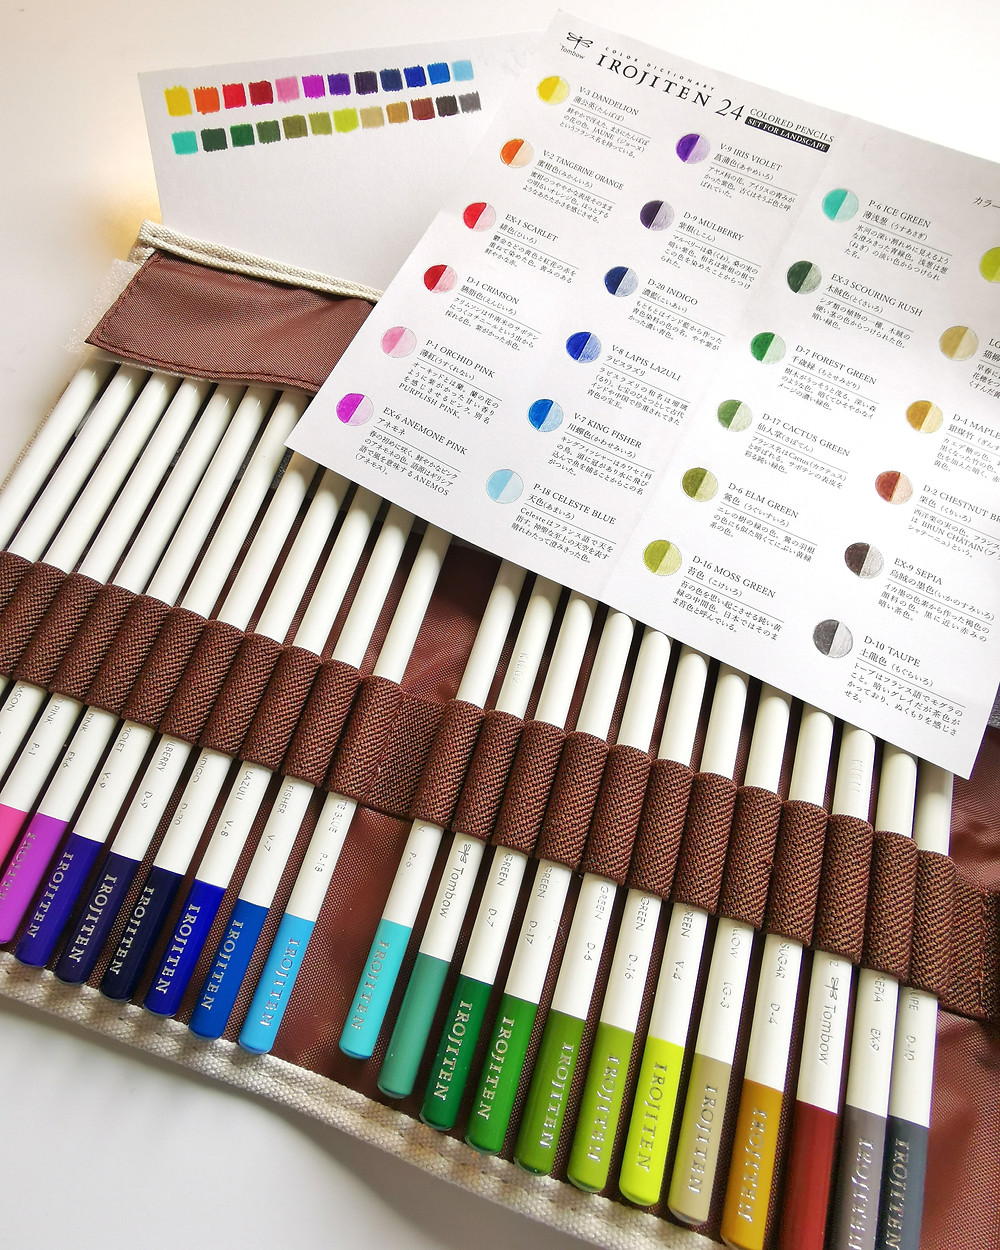 Tombow Irojiten 24 set